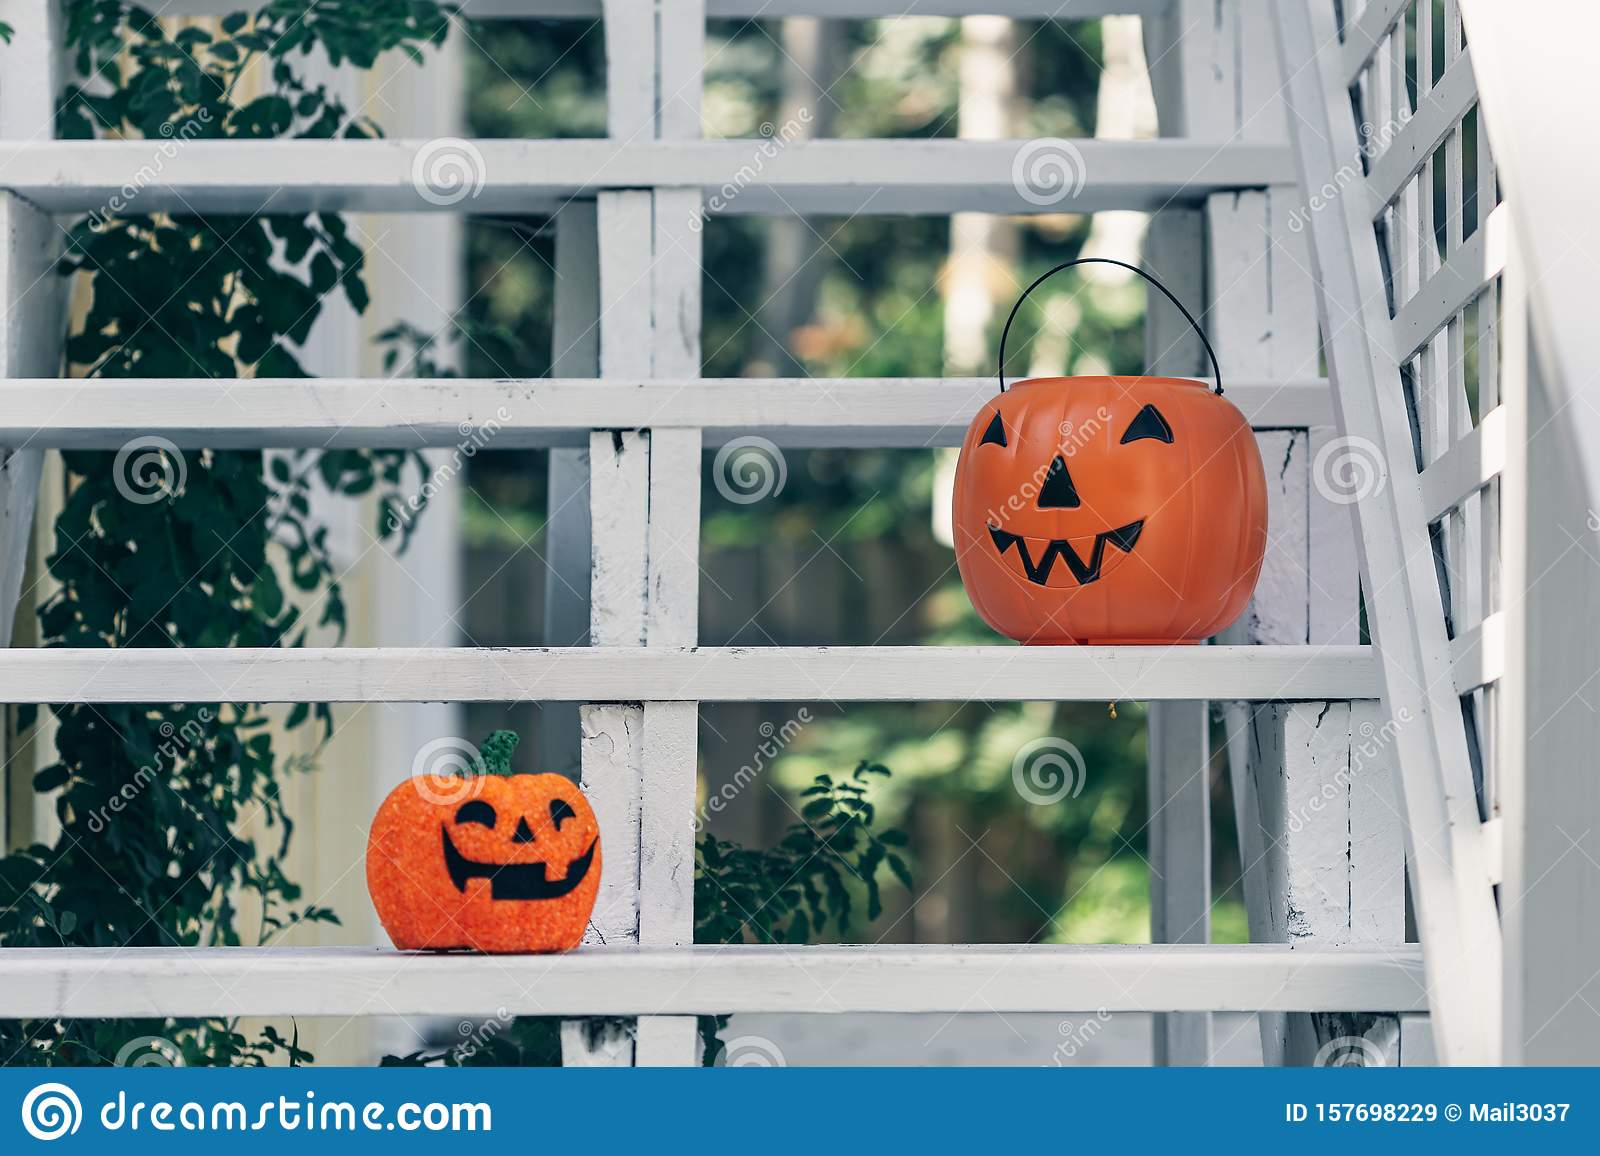 Vintage Old Fashioned Retro Halloween Outdoor Decorations Garden Halloween Decor With Pumpkin Metal House Stock Image Image Of Decor Decorations 157698229